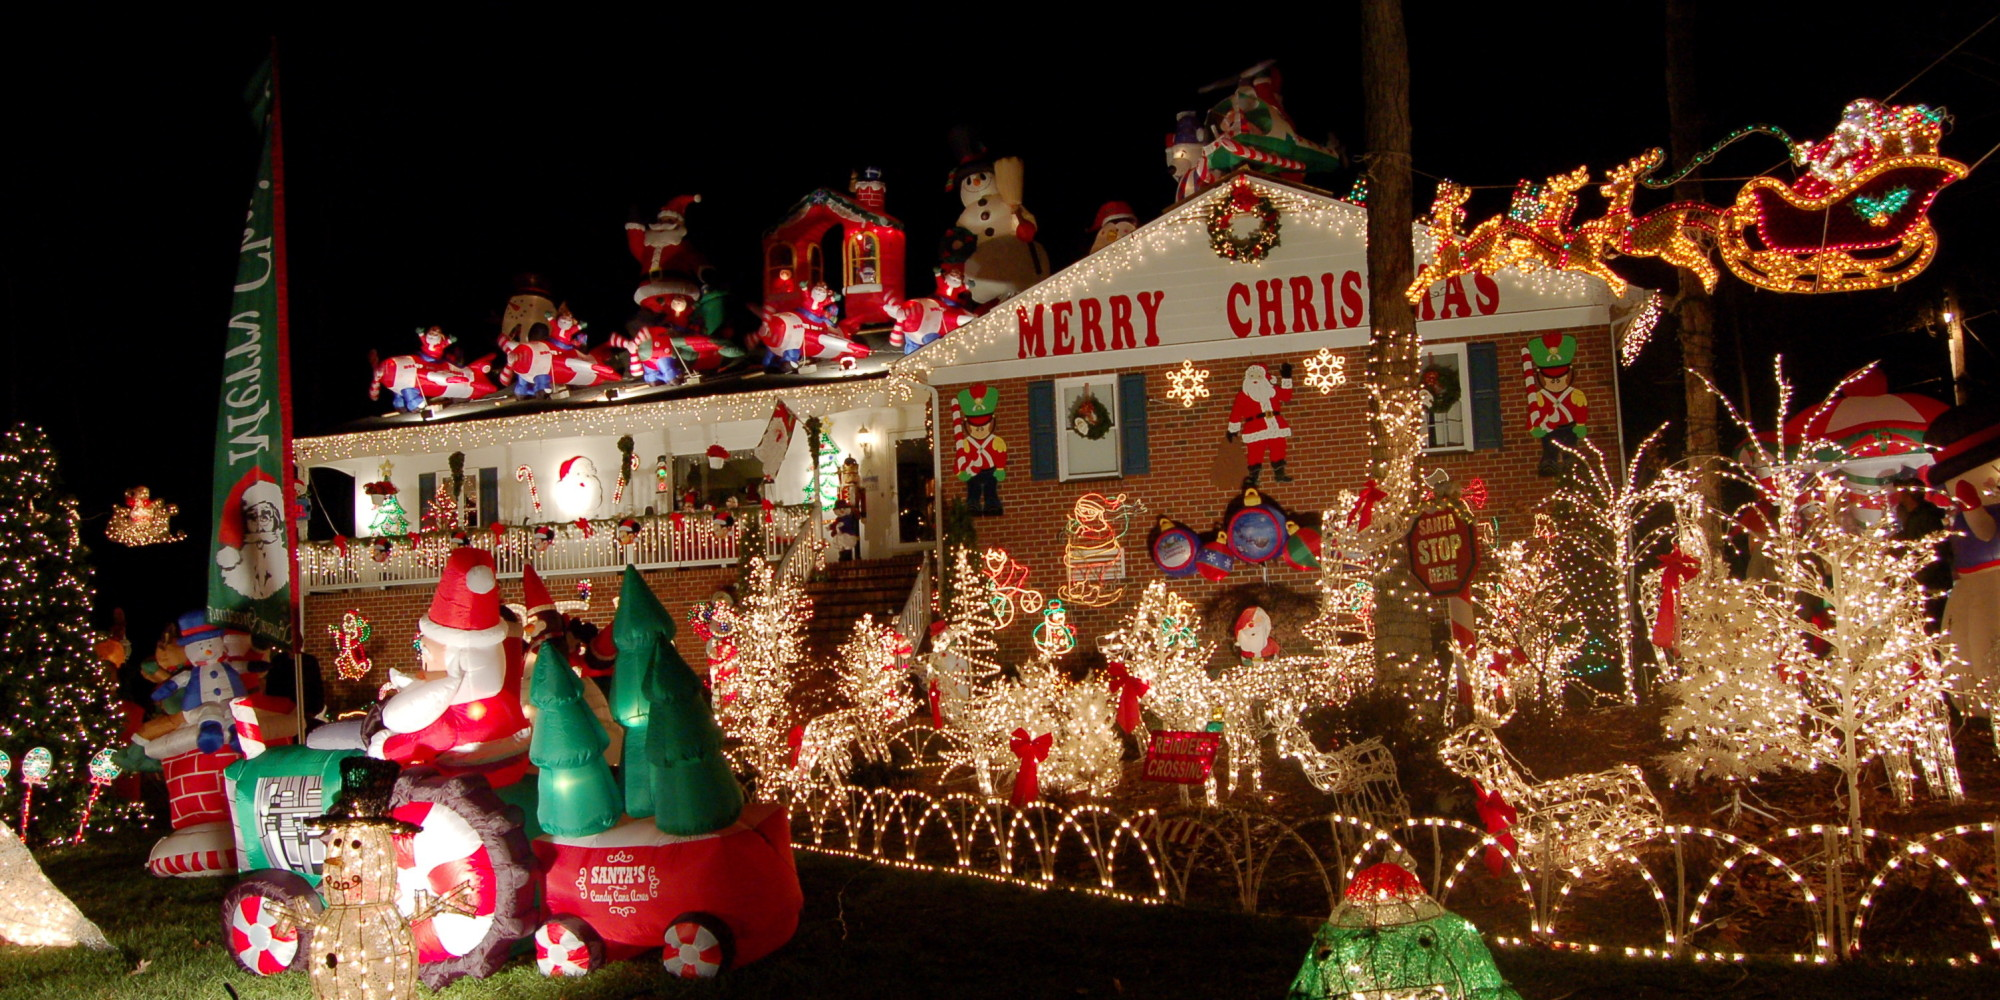 Pictures Of Christmas Decorations 9 Tacky Christmas Decorations That Will Ruin The Holidays  Huffpost